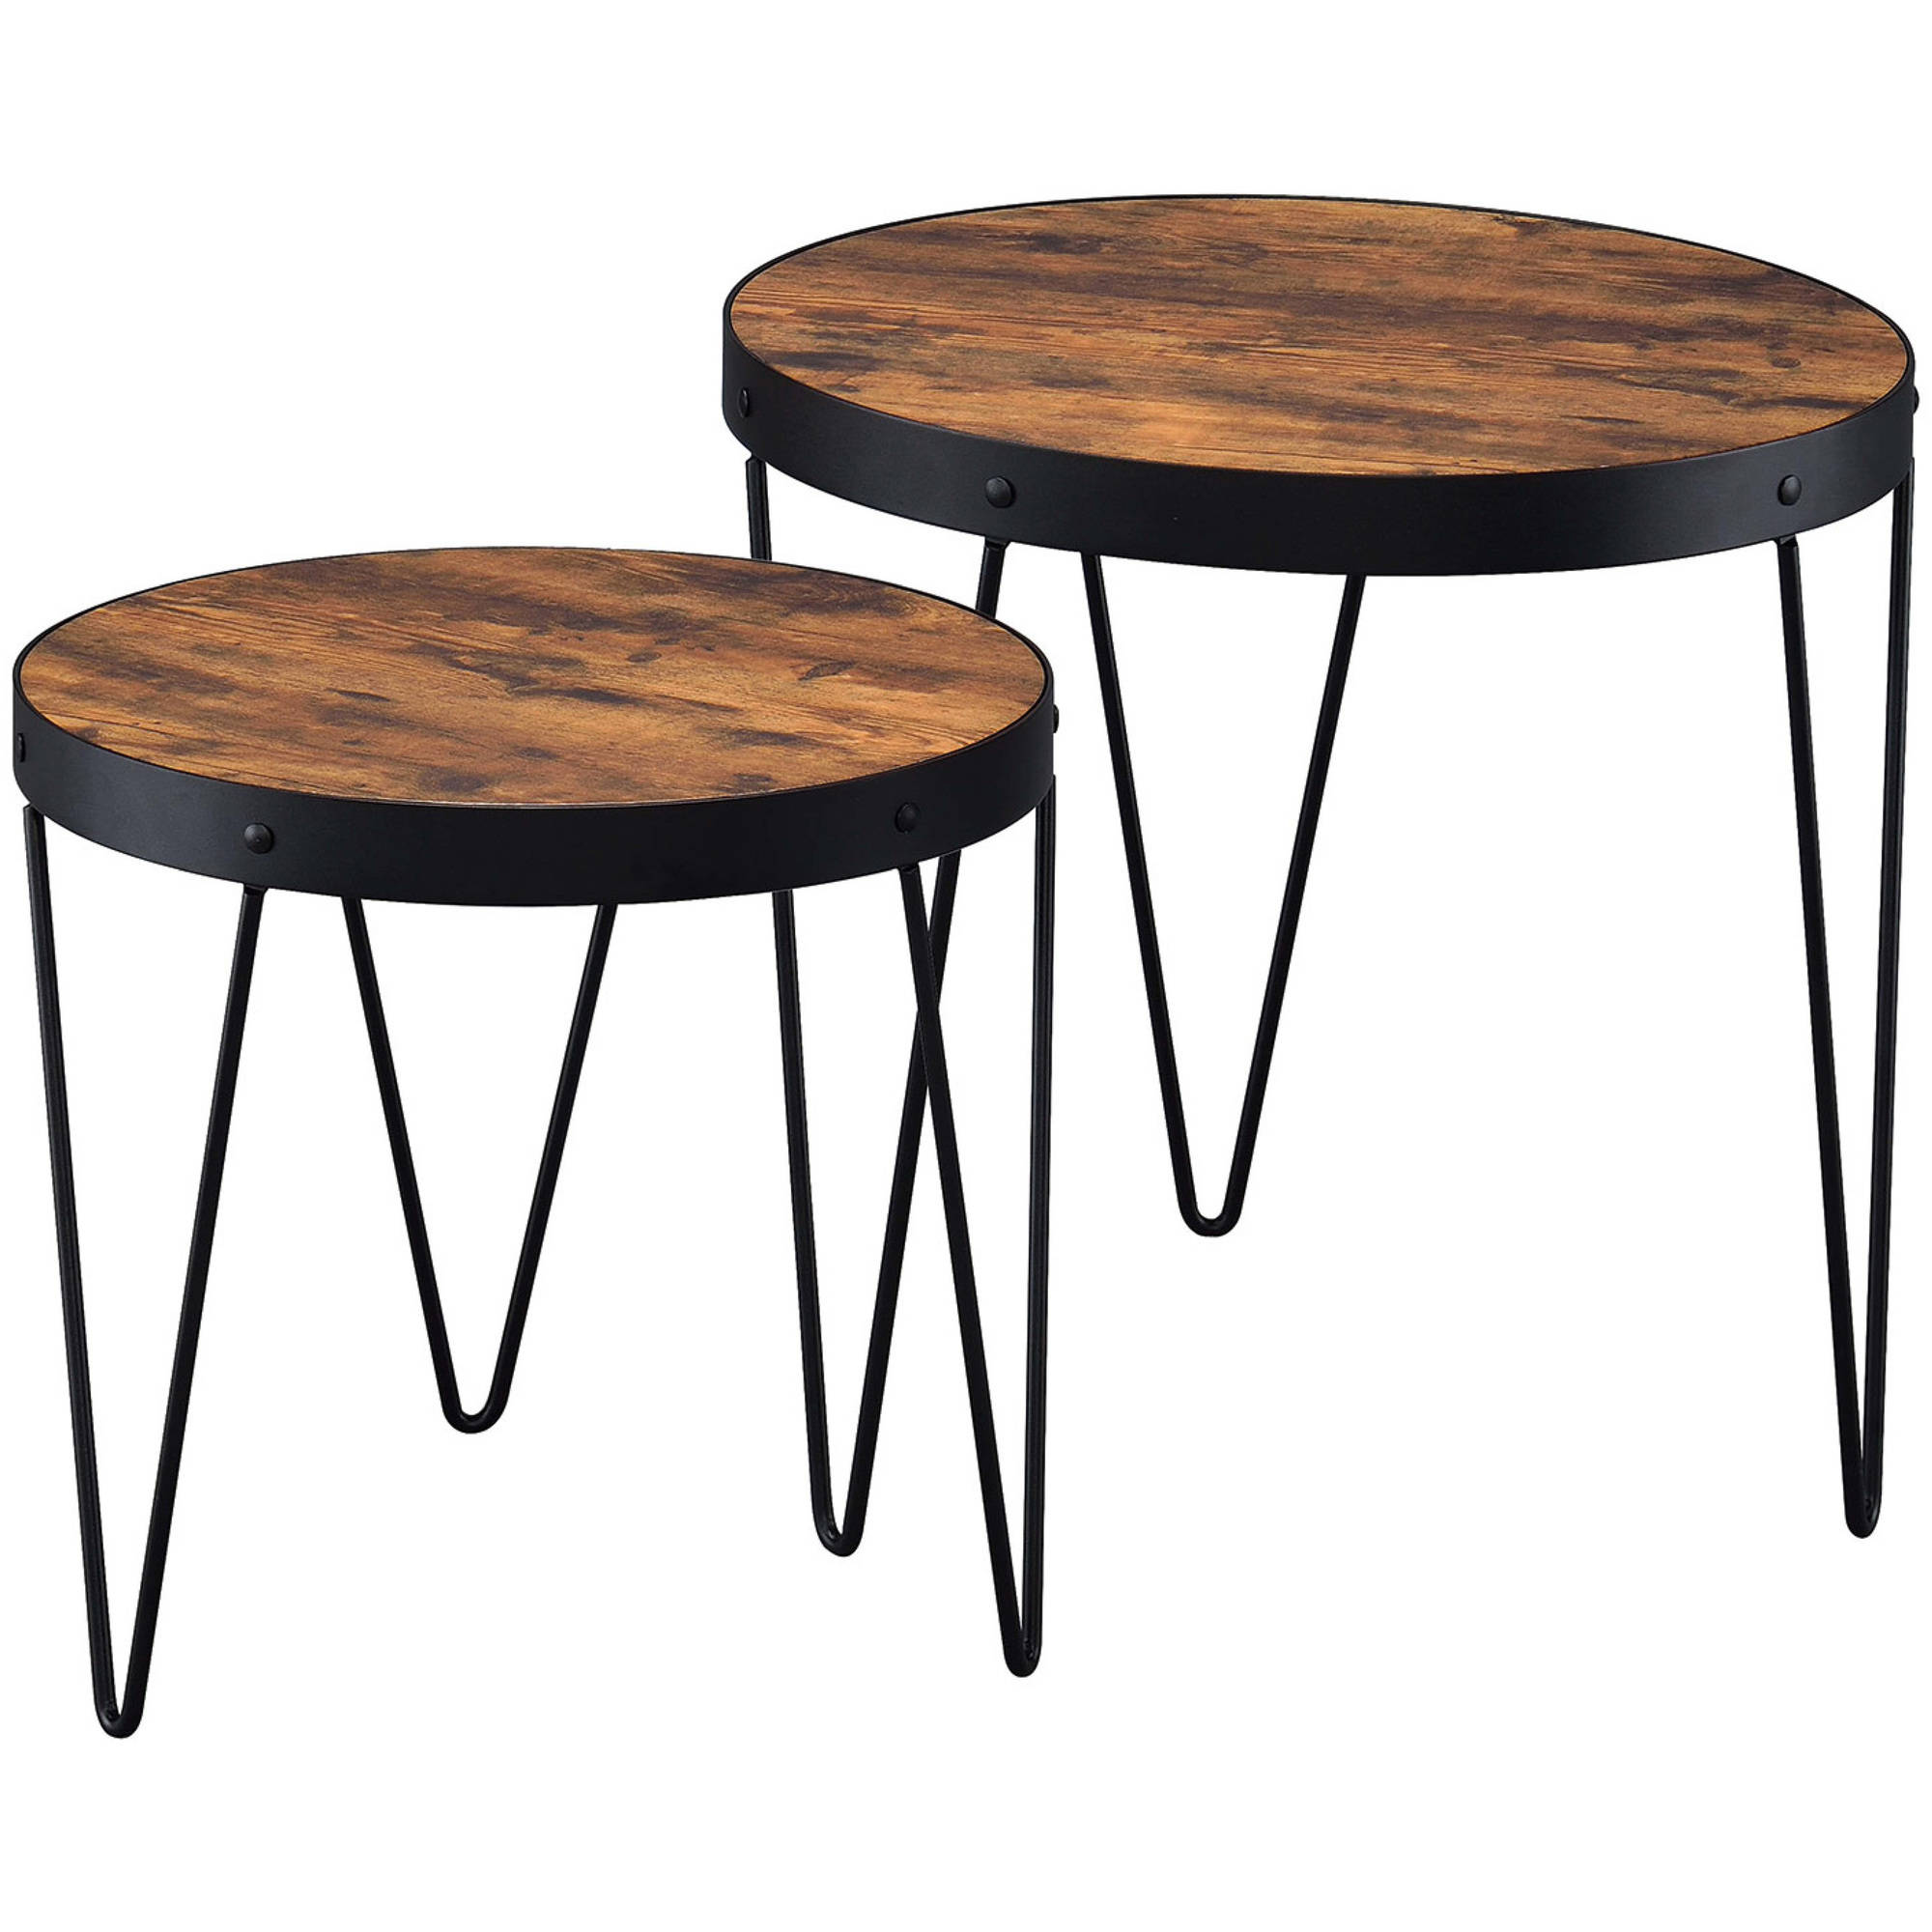 Coaster Company Accent Table, Honey Cherry, Veneer, Black Legs, Two Piece Nesting Table by Coaster Company